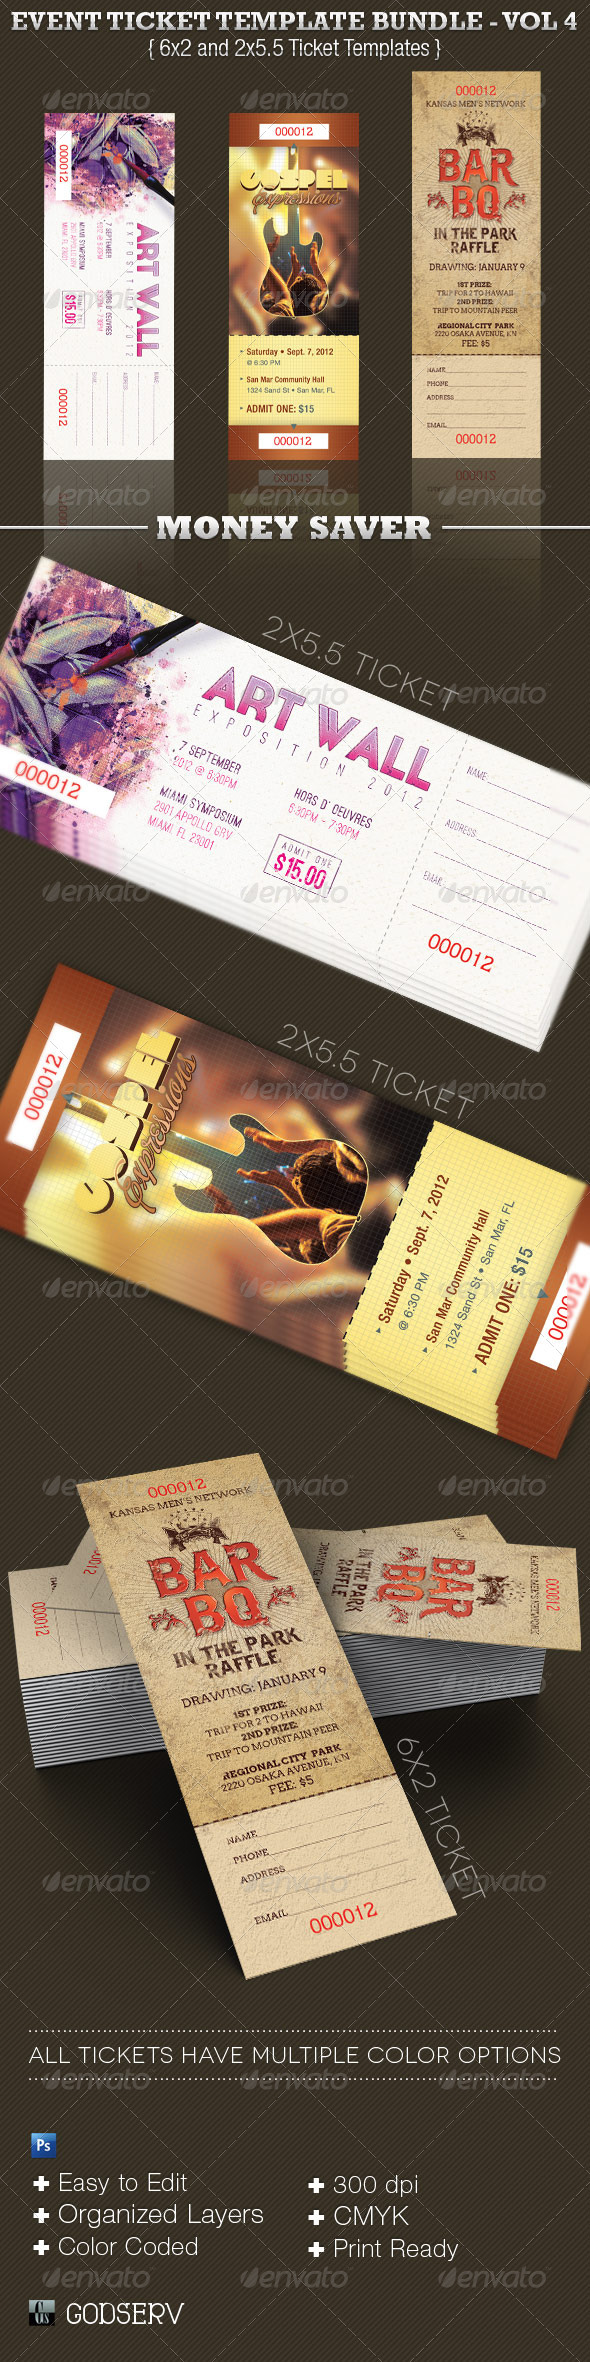 GraphicRiver Event Ticket Template Bundle Volume 4 3604927